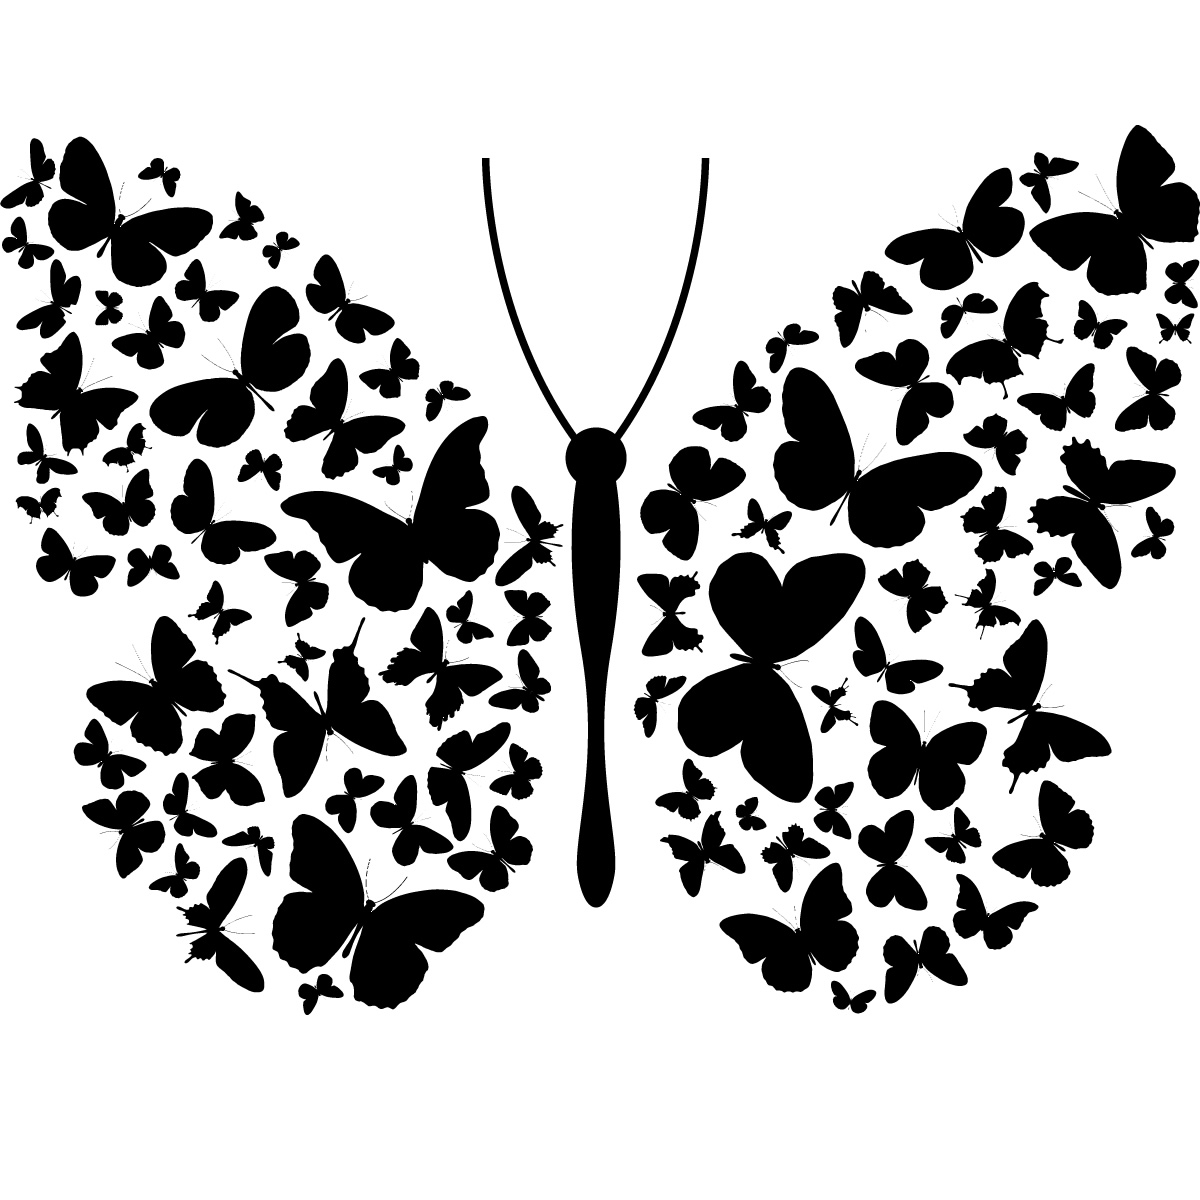 Butterflies Art Images Click on The Image Below to